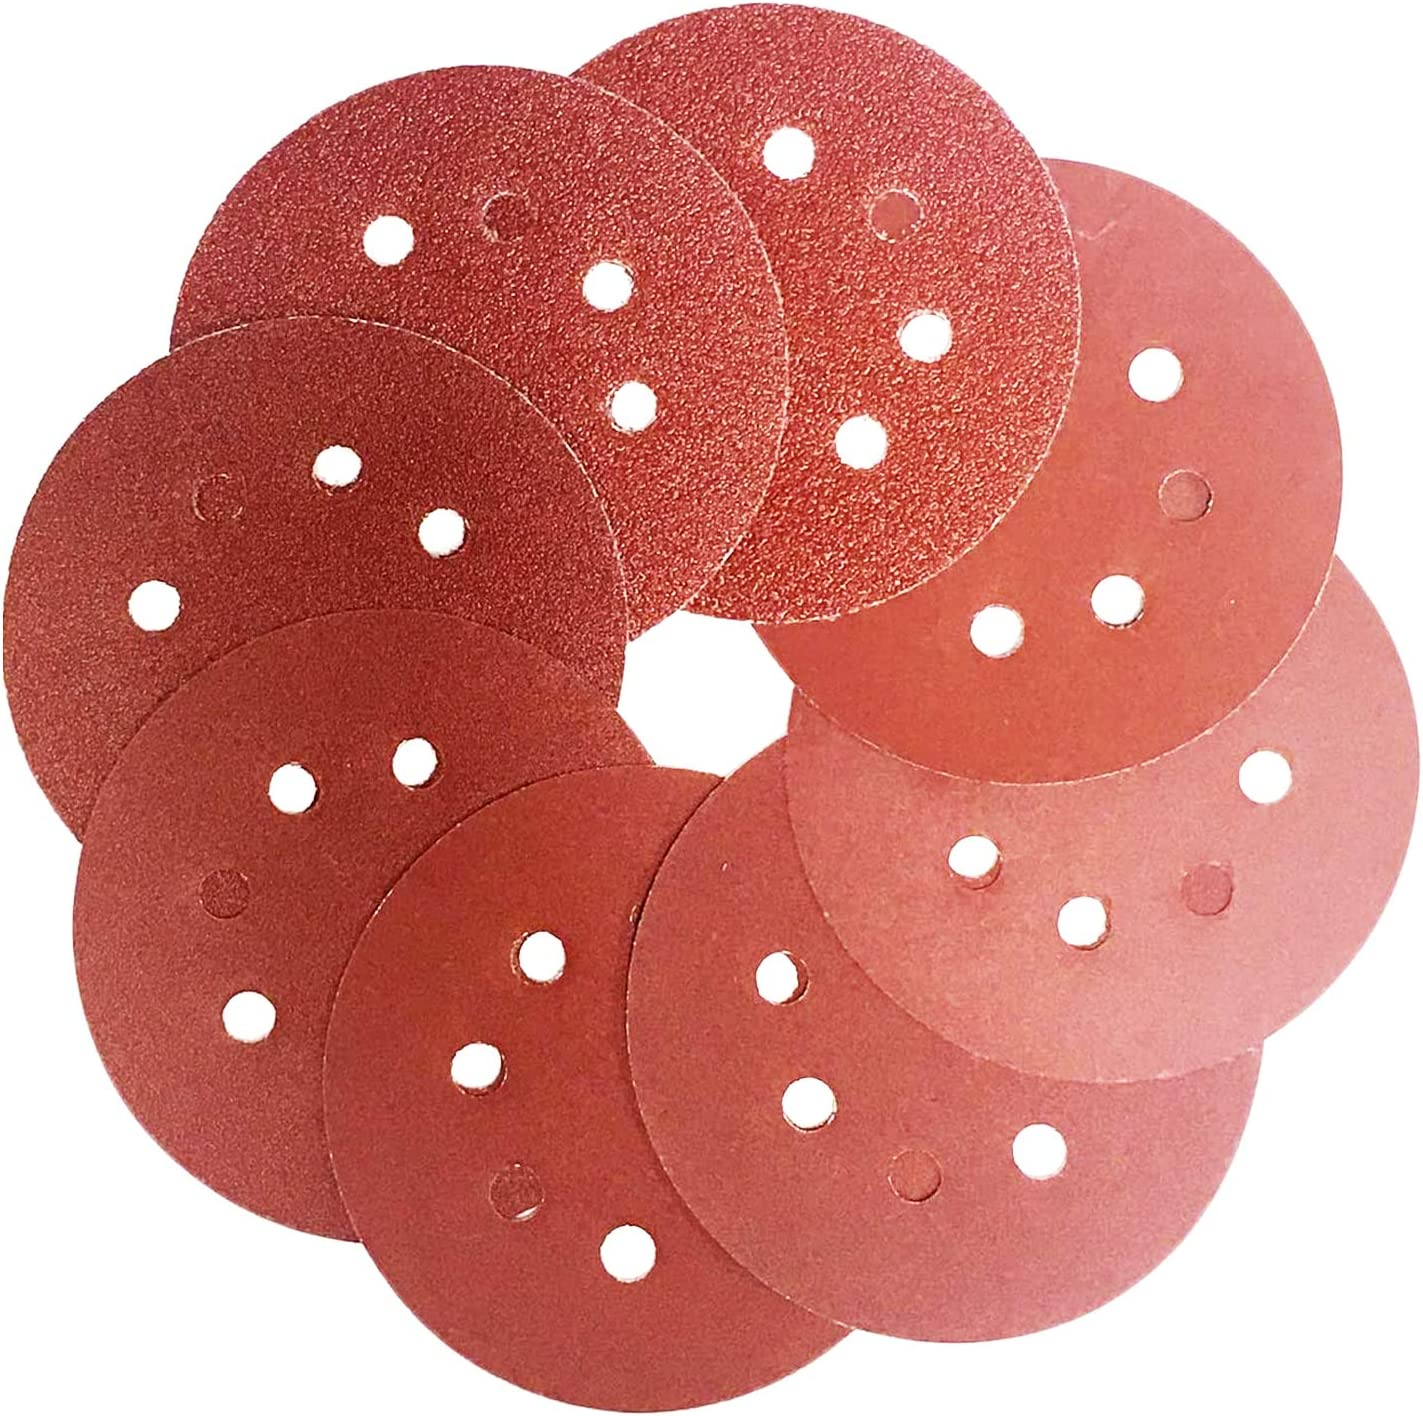 Inexpensive 80pcs 5-Inch Sanding discs Ranking TOP4 8 Holes Loop Ass Pads Sander and Hook